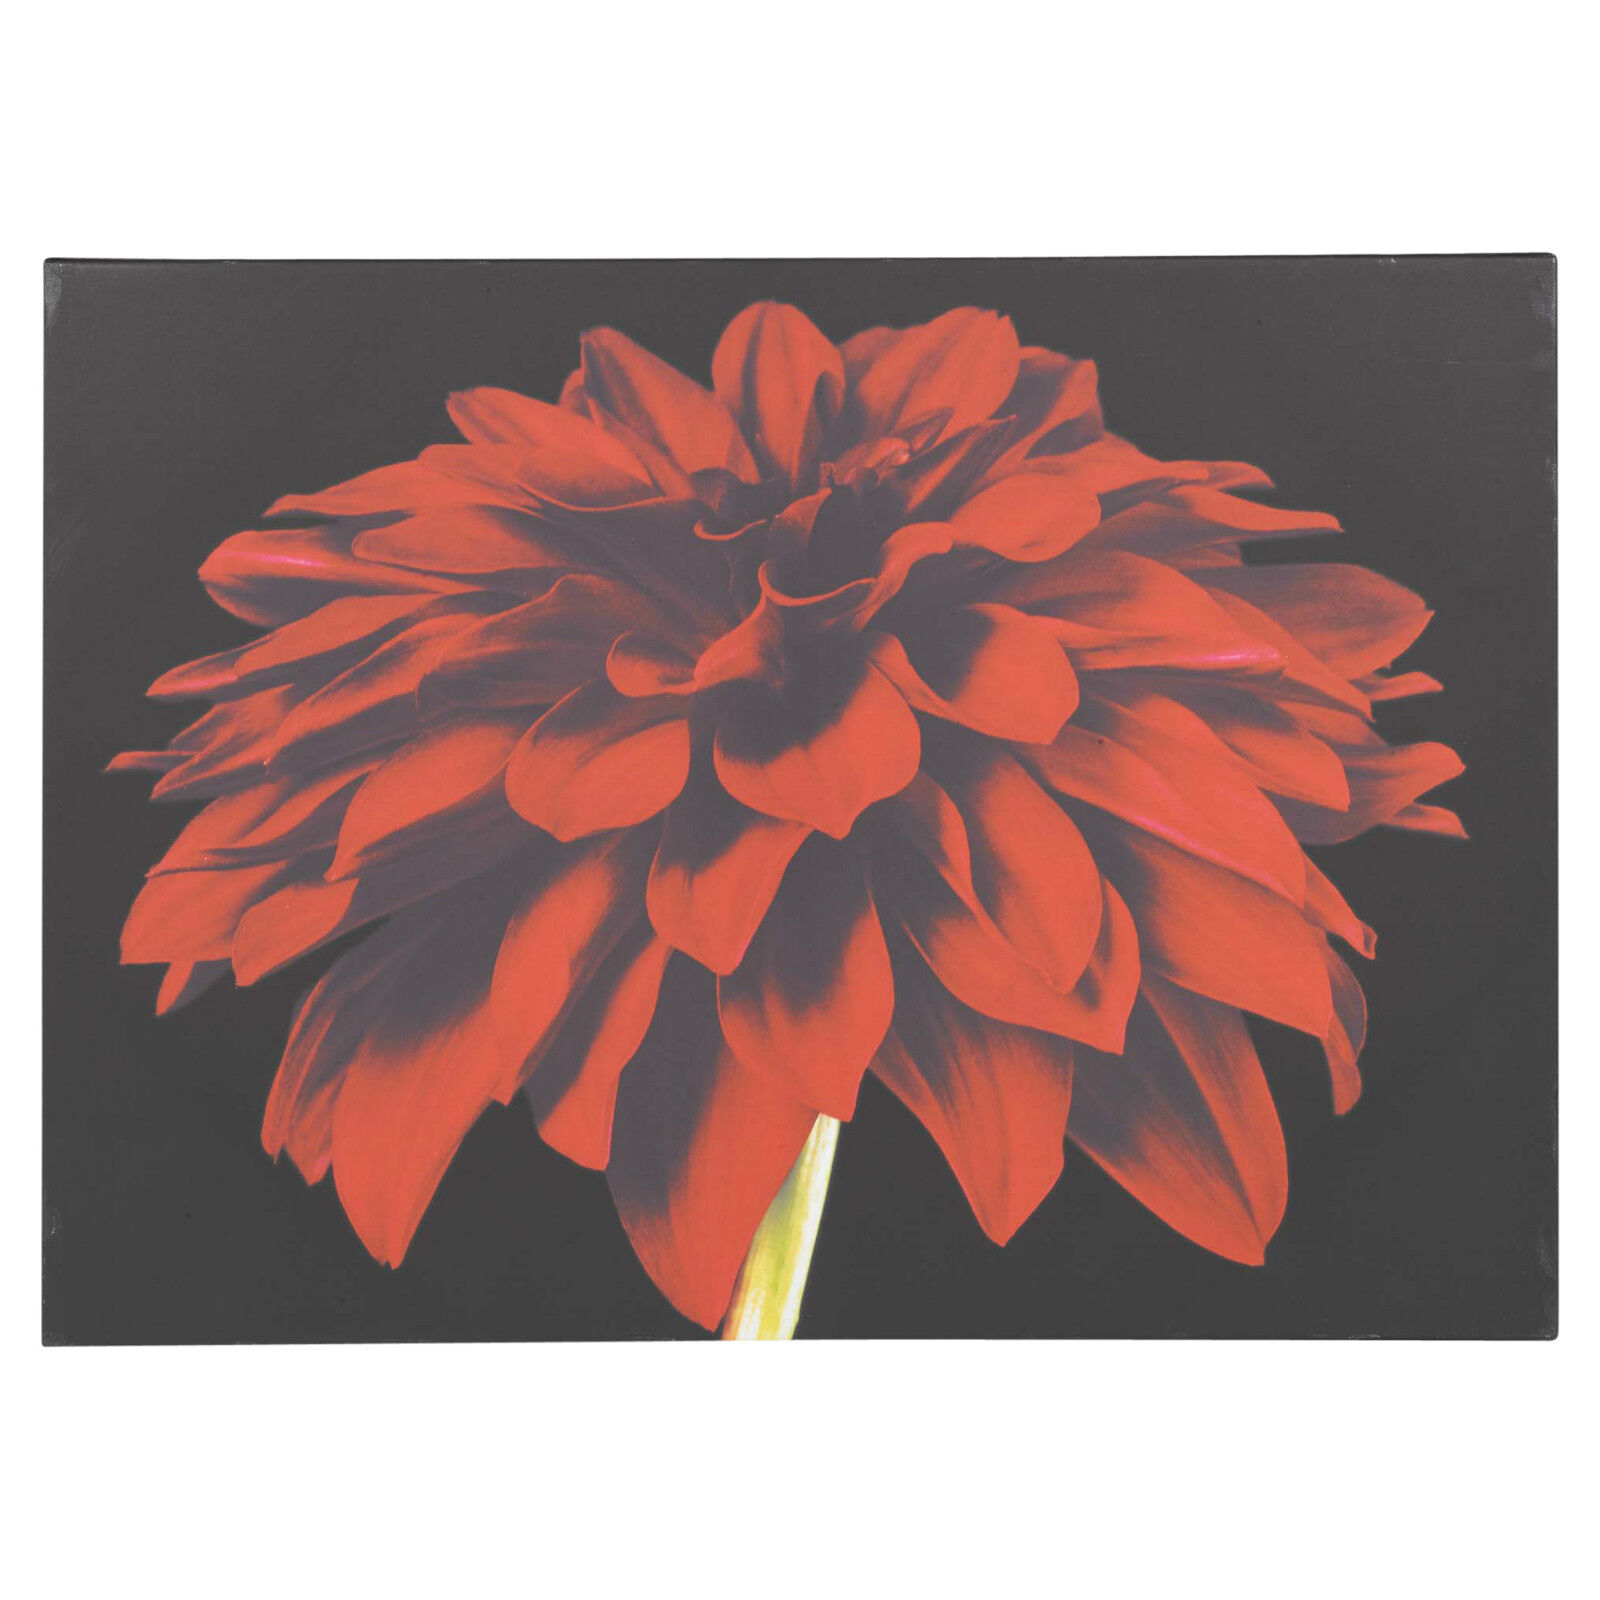 Wall Canvas Red Dahlia Home Decoration Large 70 x 49.5cm Print Picture Panel Art